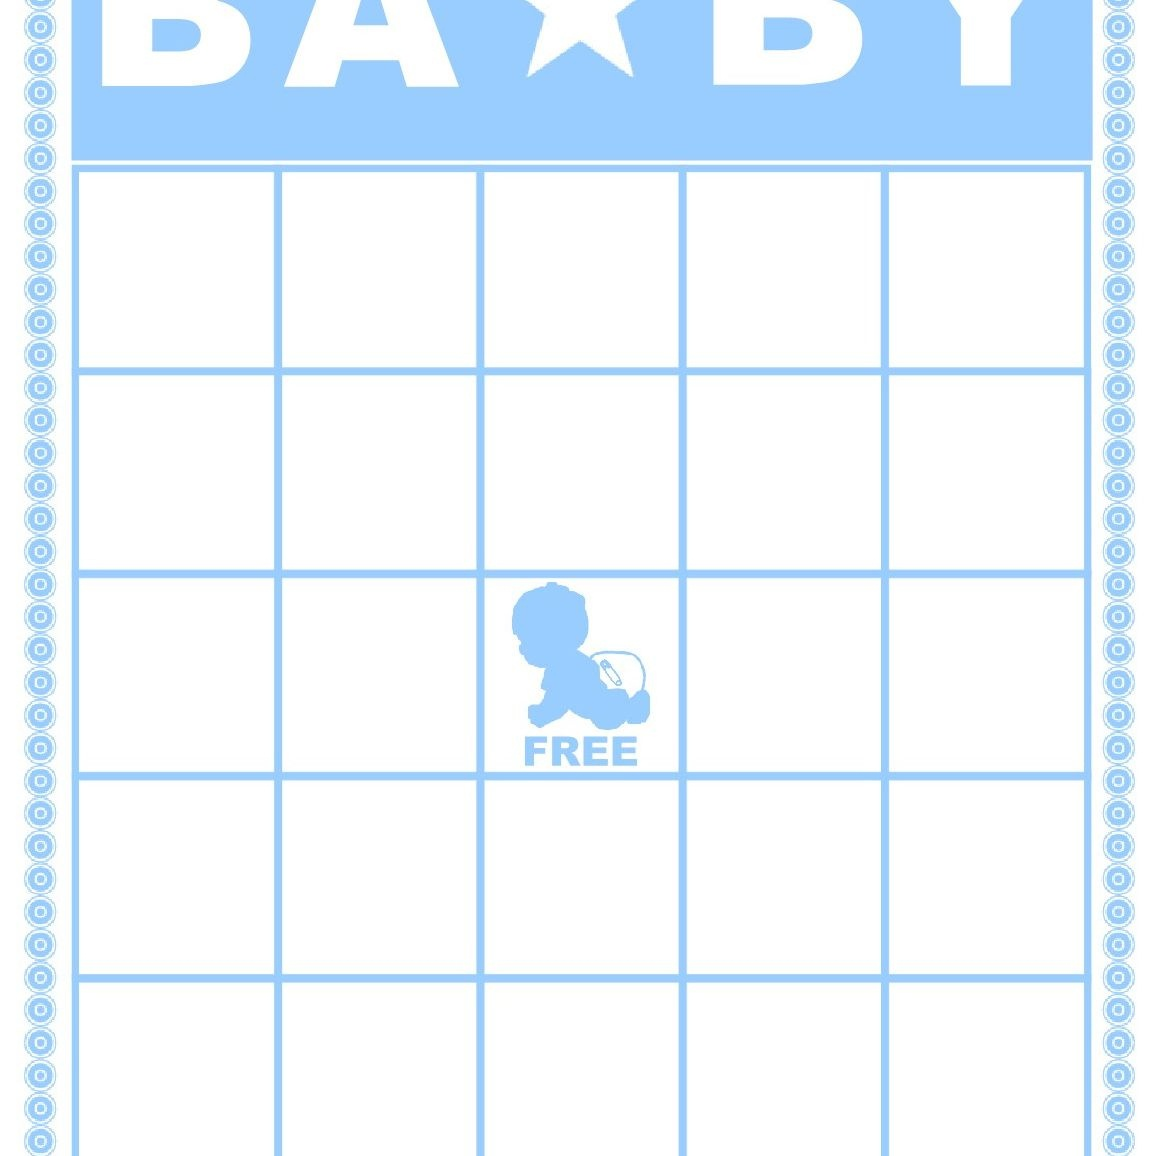 Free Baby Shower Bingo Cards Your Guests Will Love - Free Printable Baby Shower Bingo For 50 People